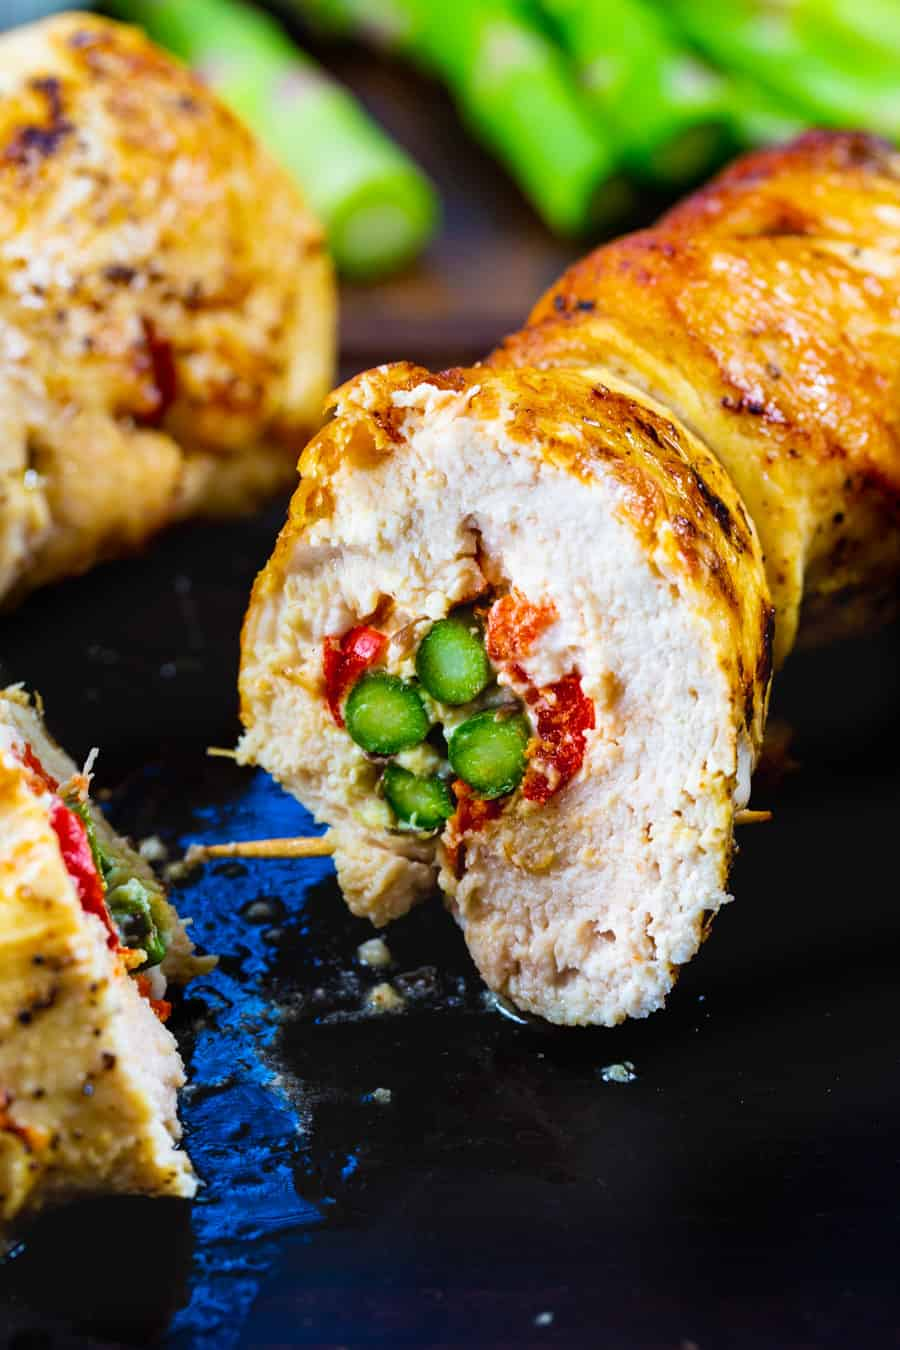 Chicken Roll-Up cut open to show inside.